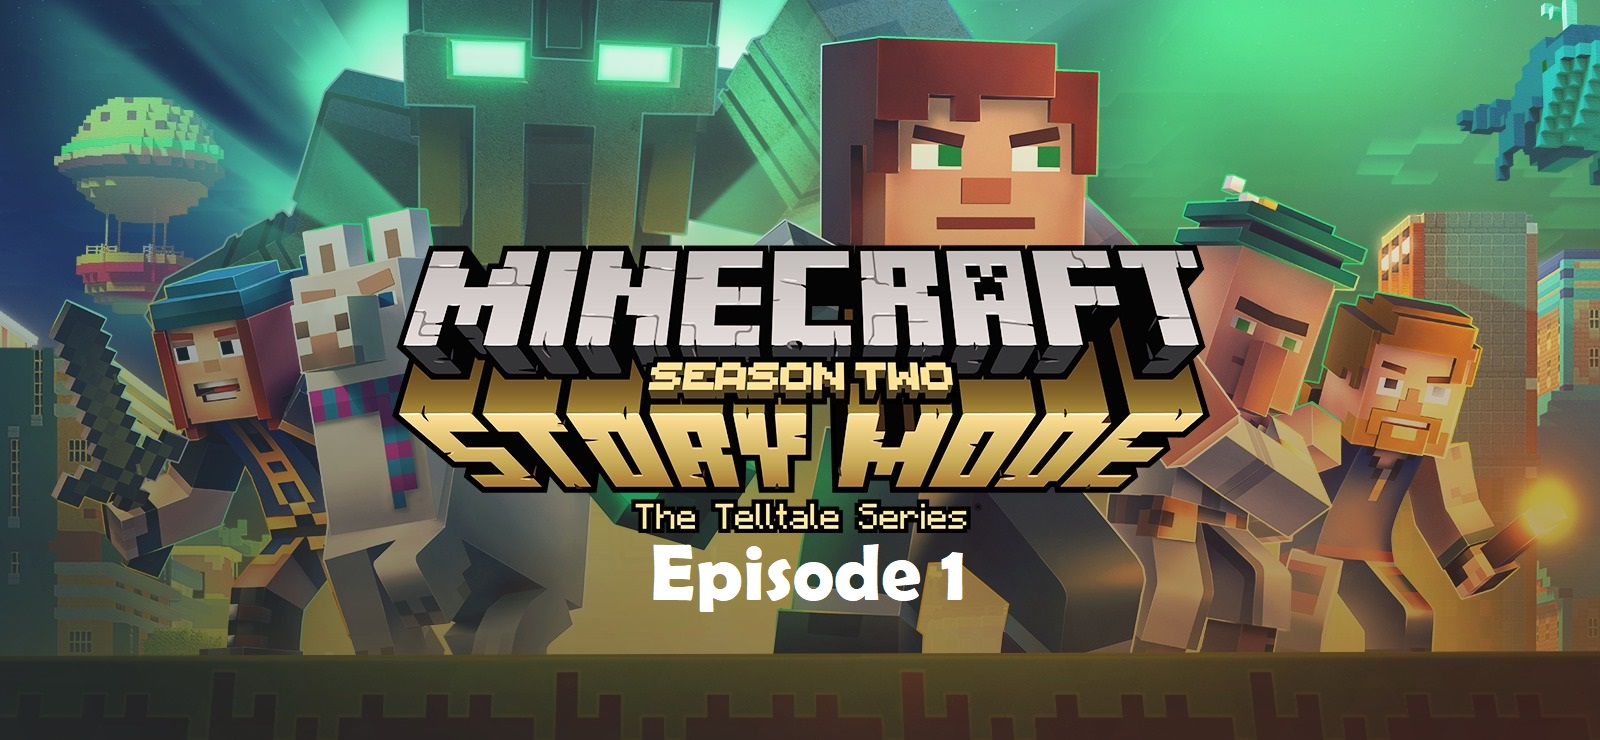 Minecraft Story Mode Season 2 Episode 1 Thisgengaming